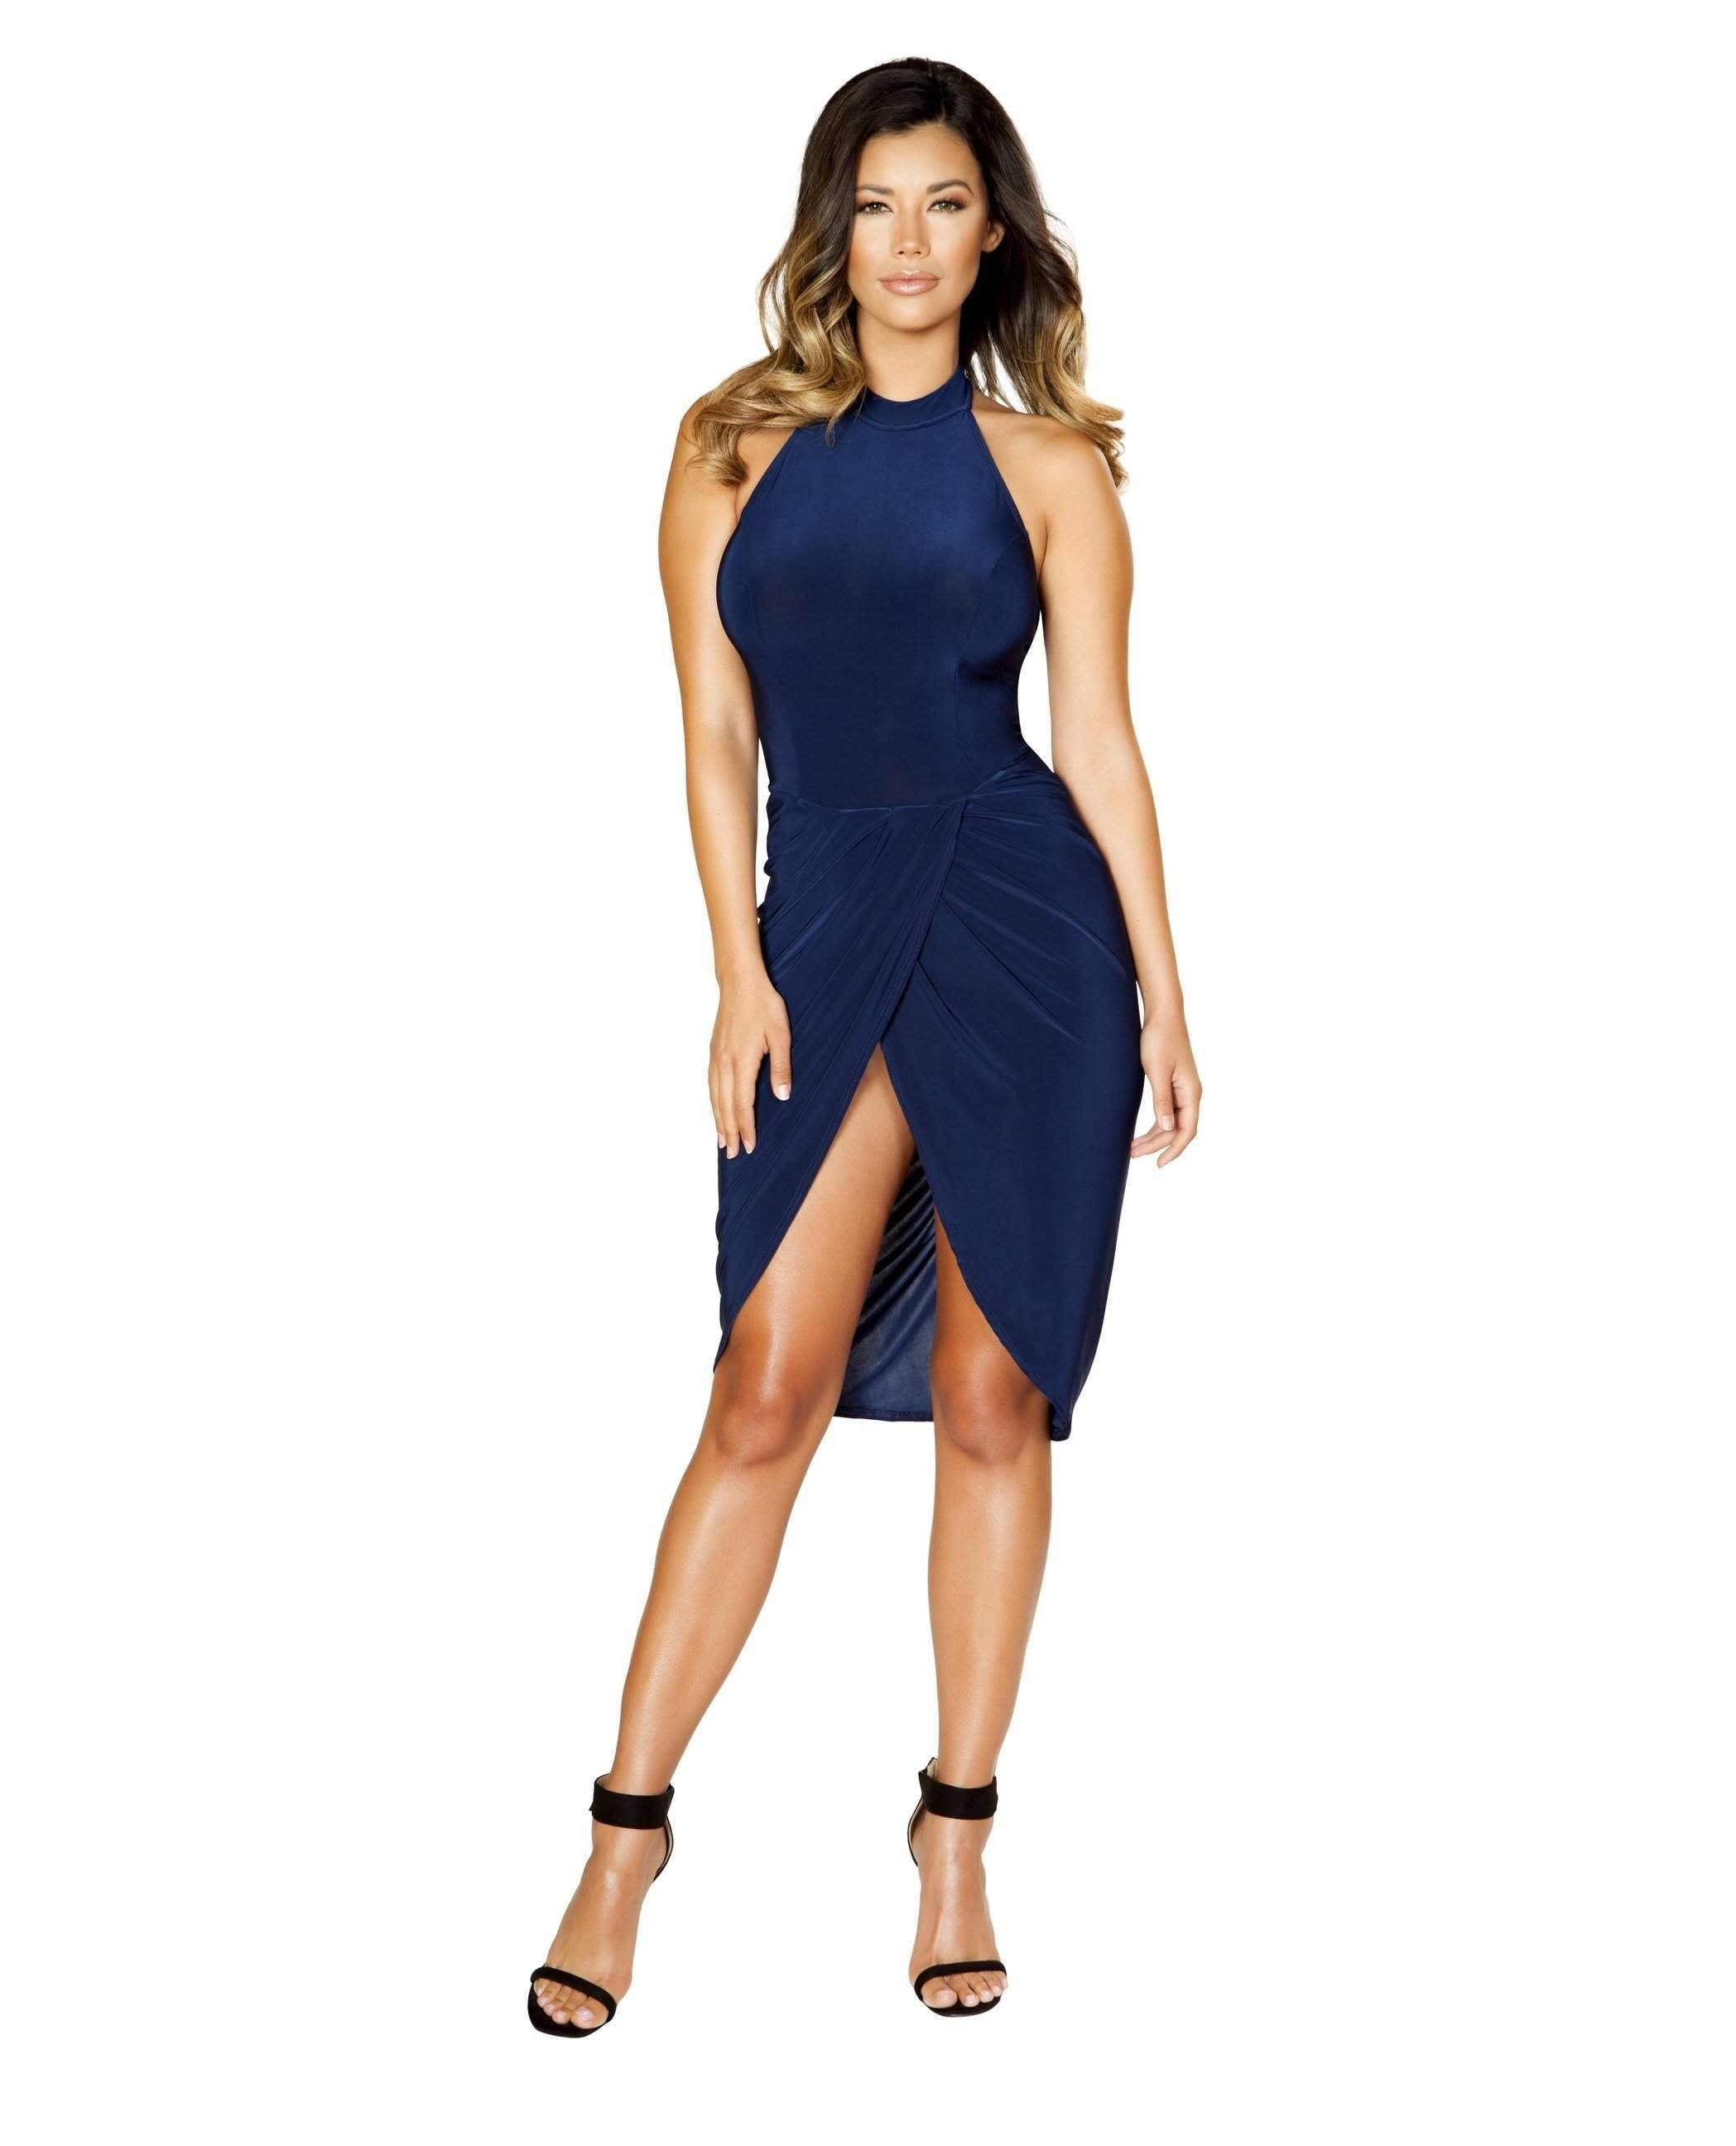 Mini Halter Neck Dress with Front Scrunch Detail-club wear-Roma Costume-small-blue-Nakees